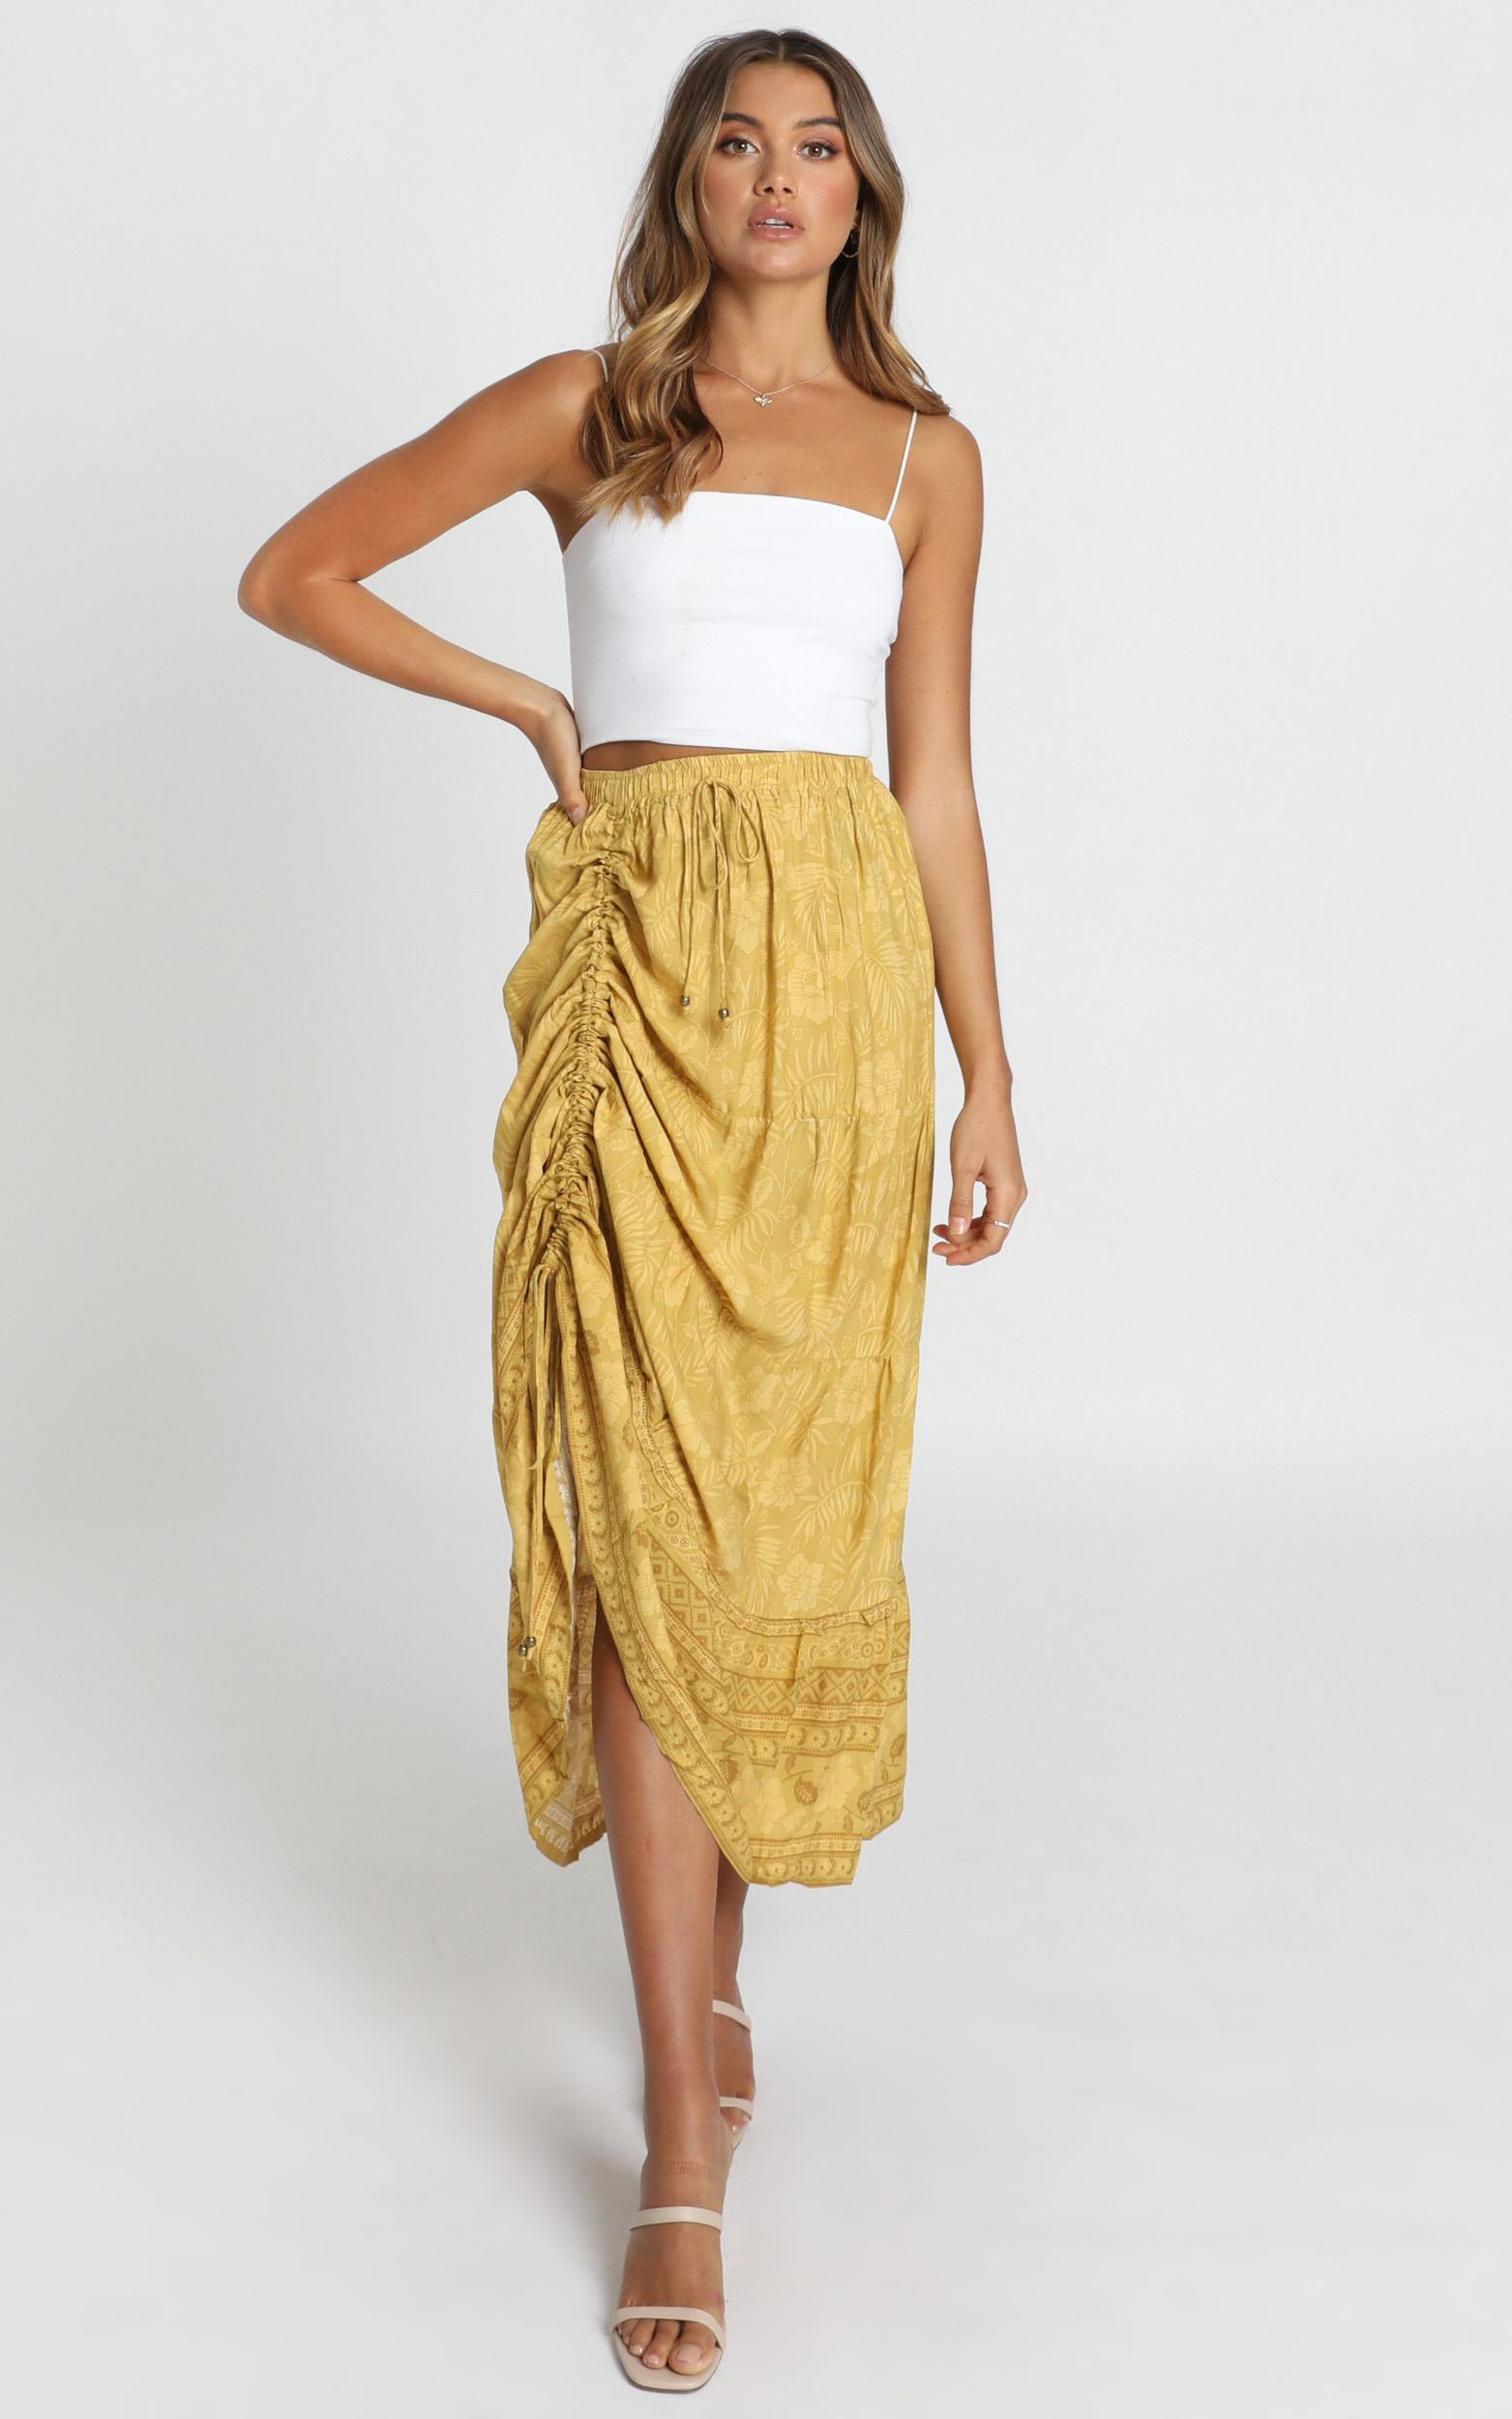 Next Big Thing Skirt in mustard floral - 14 (XL), Mustard, hi-res image number null